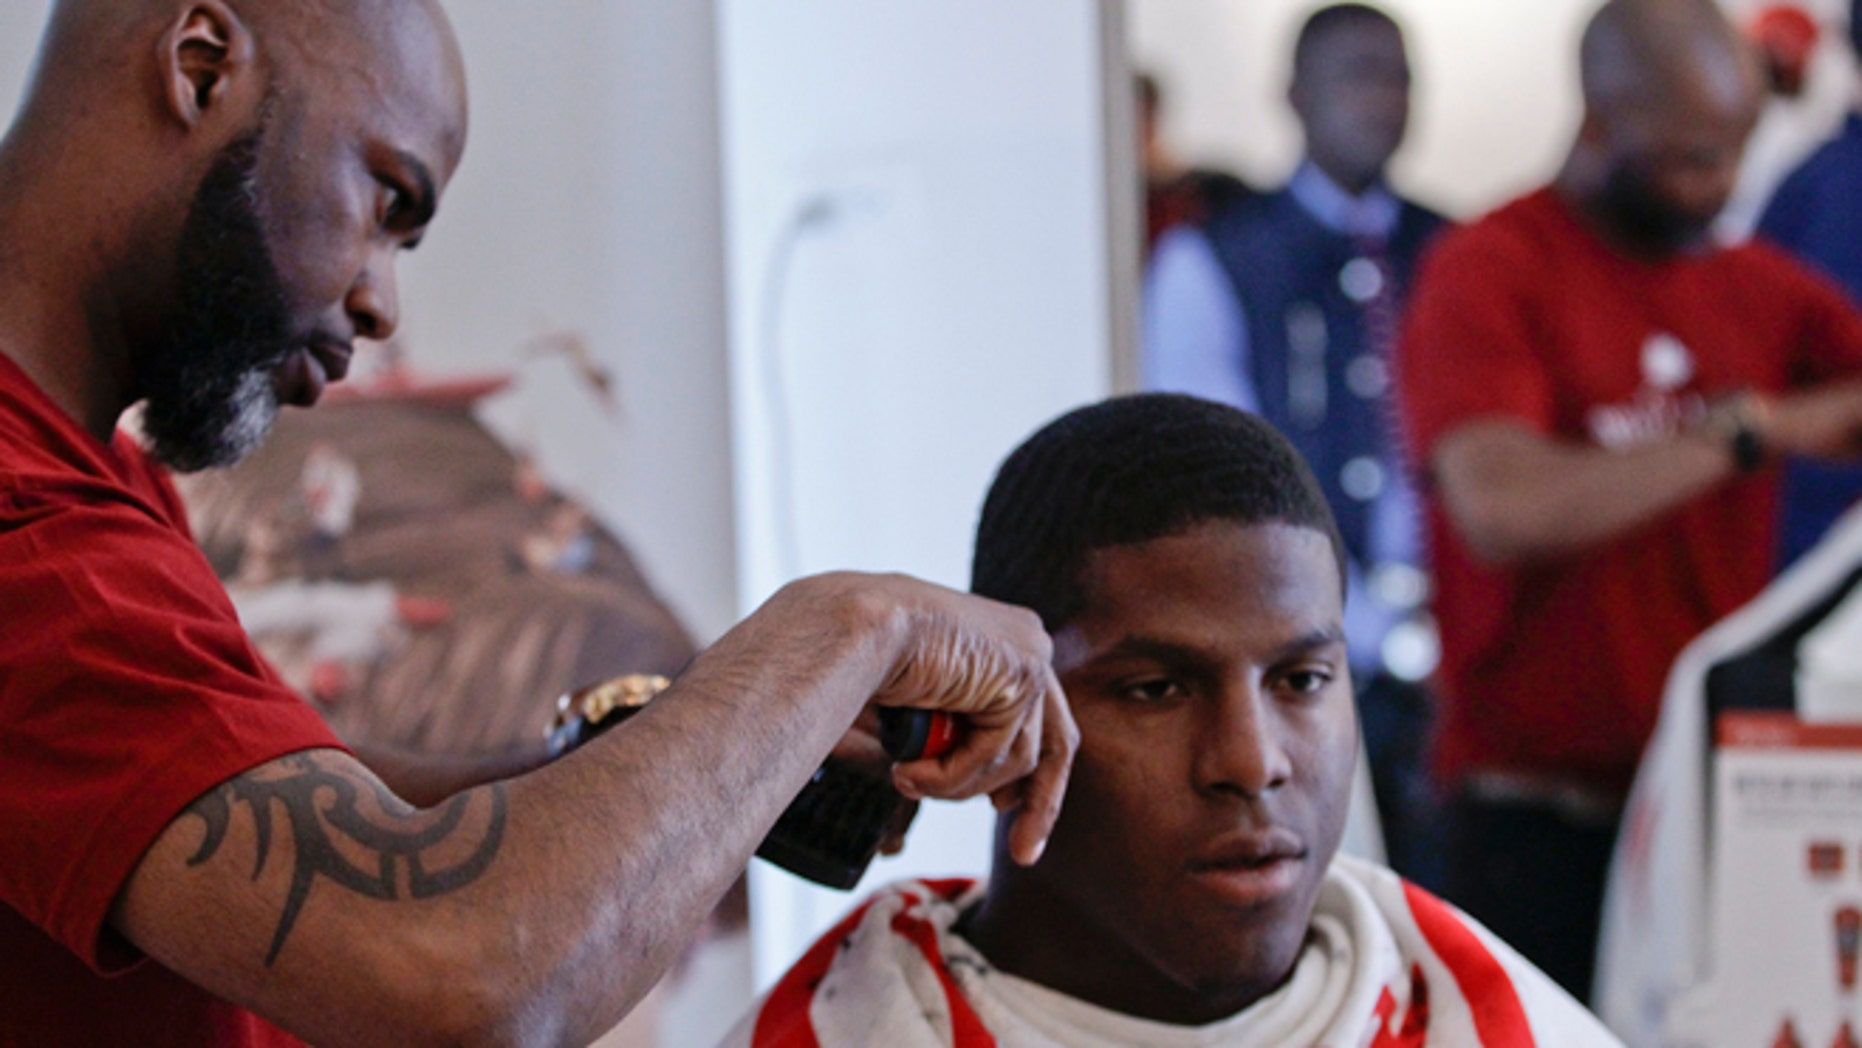 This May 6, 2014 photo shows NFL Draft prospect Kony Ealy, a defensive end from Missouri, getting a haircut during the 5th Annual NFL Pre-Draft Gifting & Style Suite at the Sean John showroom in New York. Ealy is among dozens of prospects on the  National Football League's annual draft, with 32 players per round and seven rounds, beginning Thursday night at Radio City. Ealy is projected to go late in the first round. (AP/Frank Franklin II)